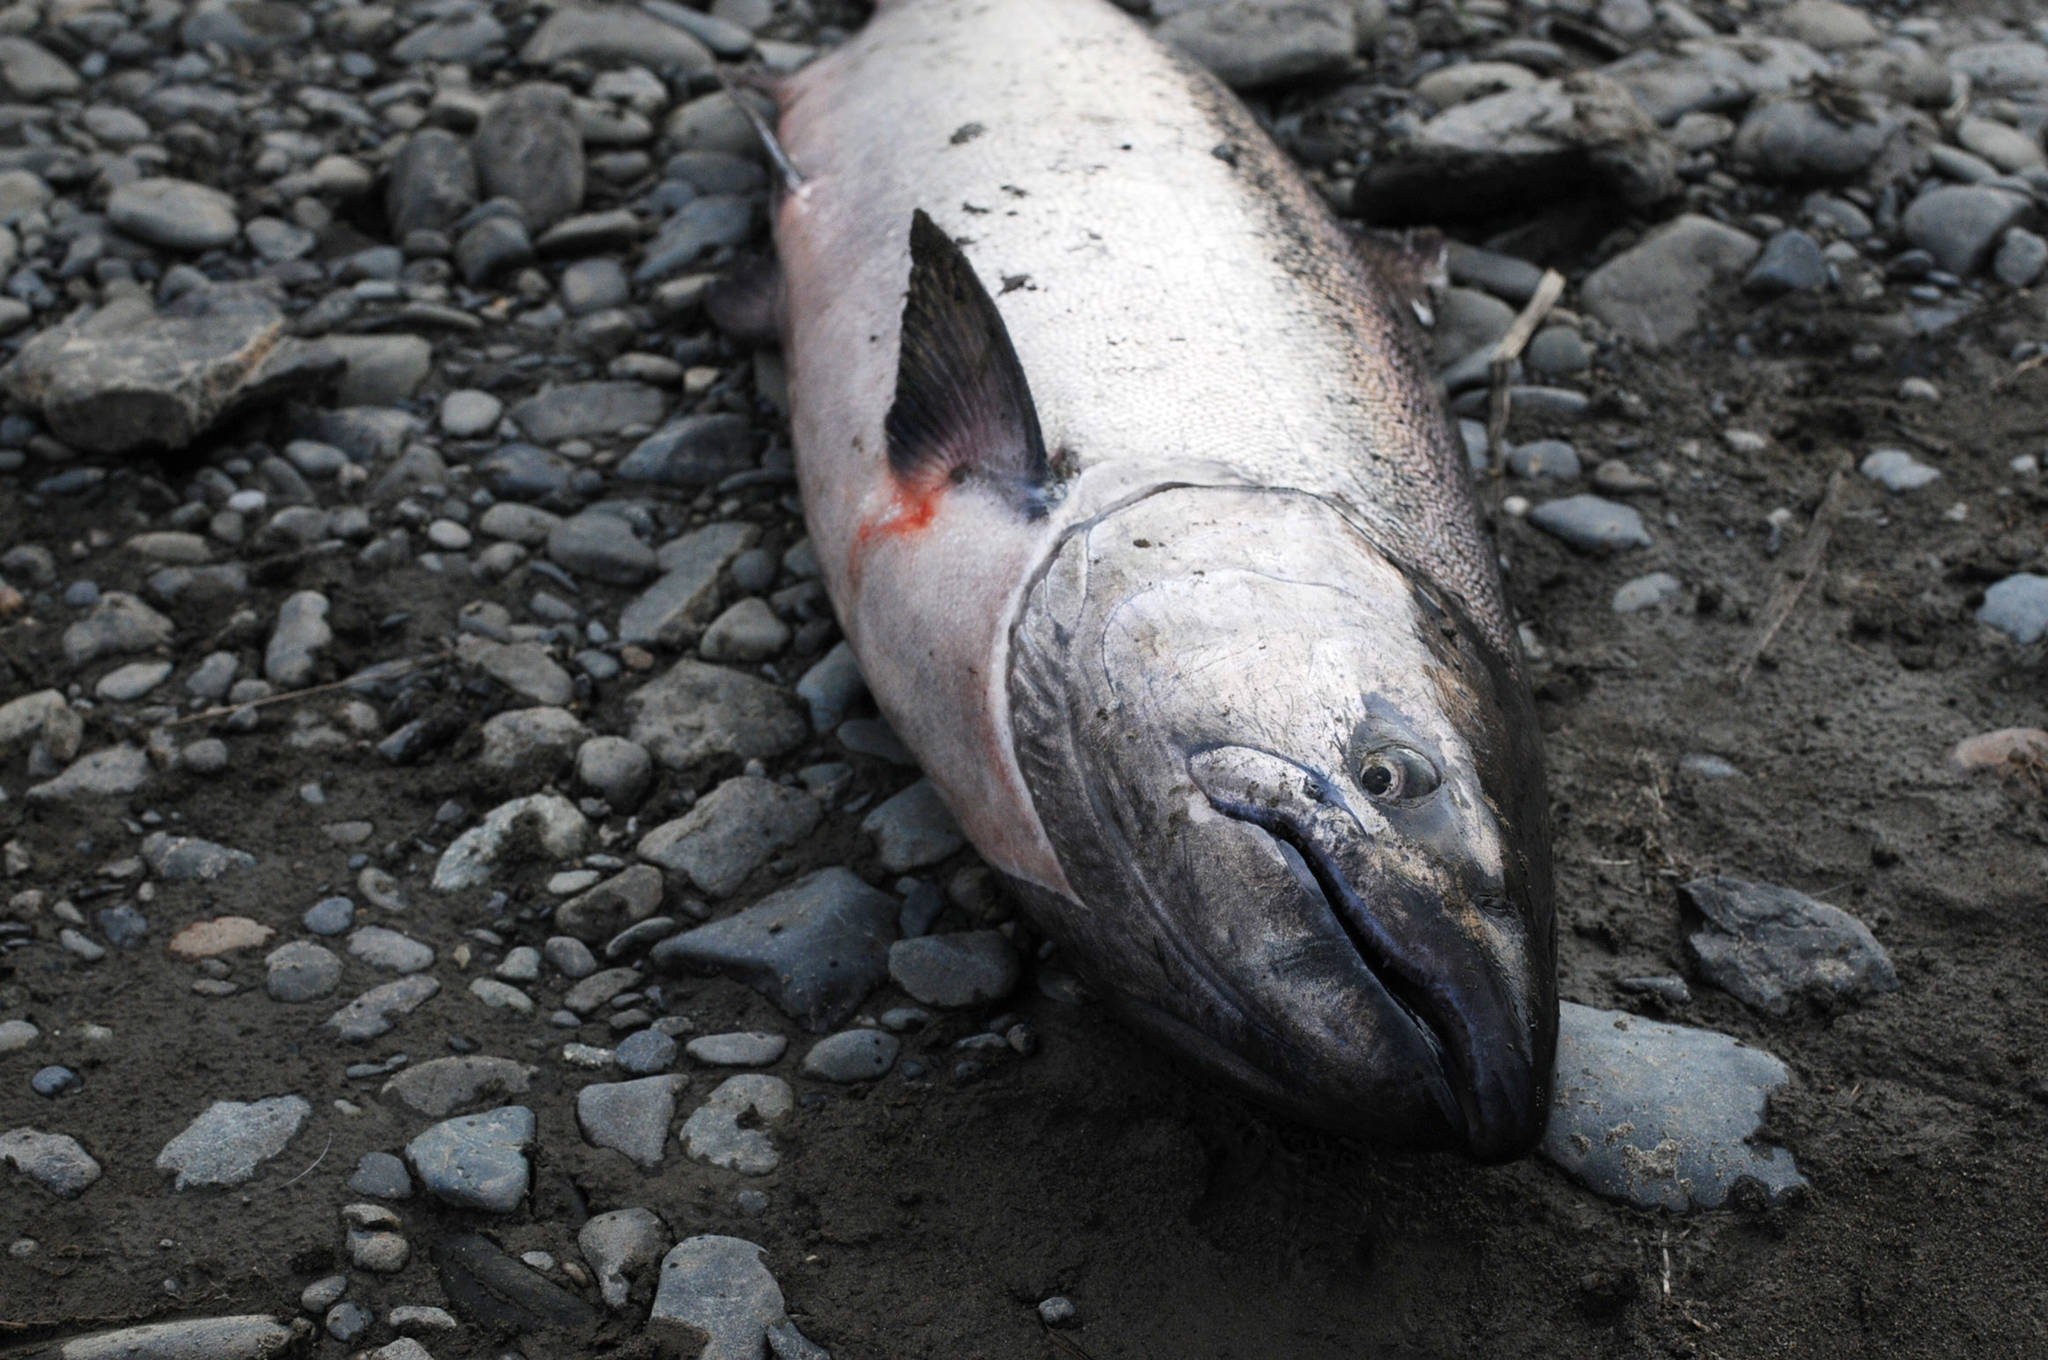 An Anchor River king salmon lies on the bank Saturday, May 19, 2018 in Anchor Point, Alaska. (Photo by Elizabeth Earl/Peninsula Clarion, file)